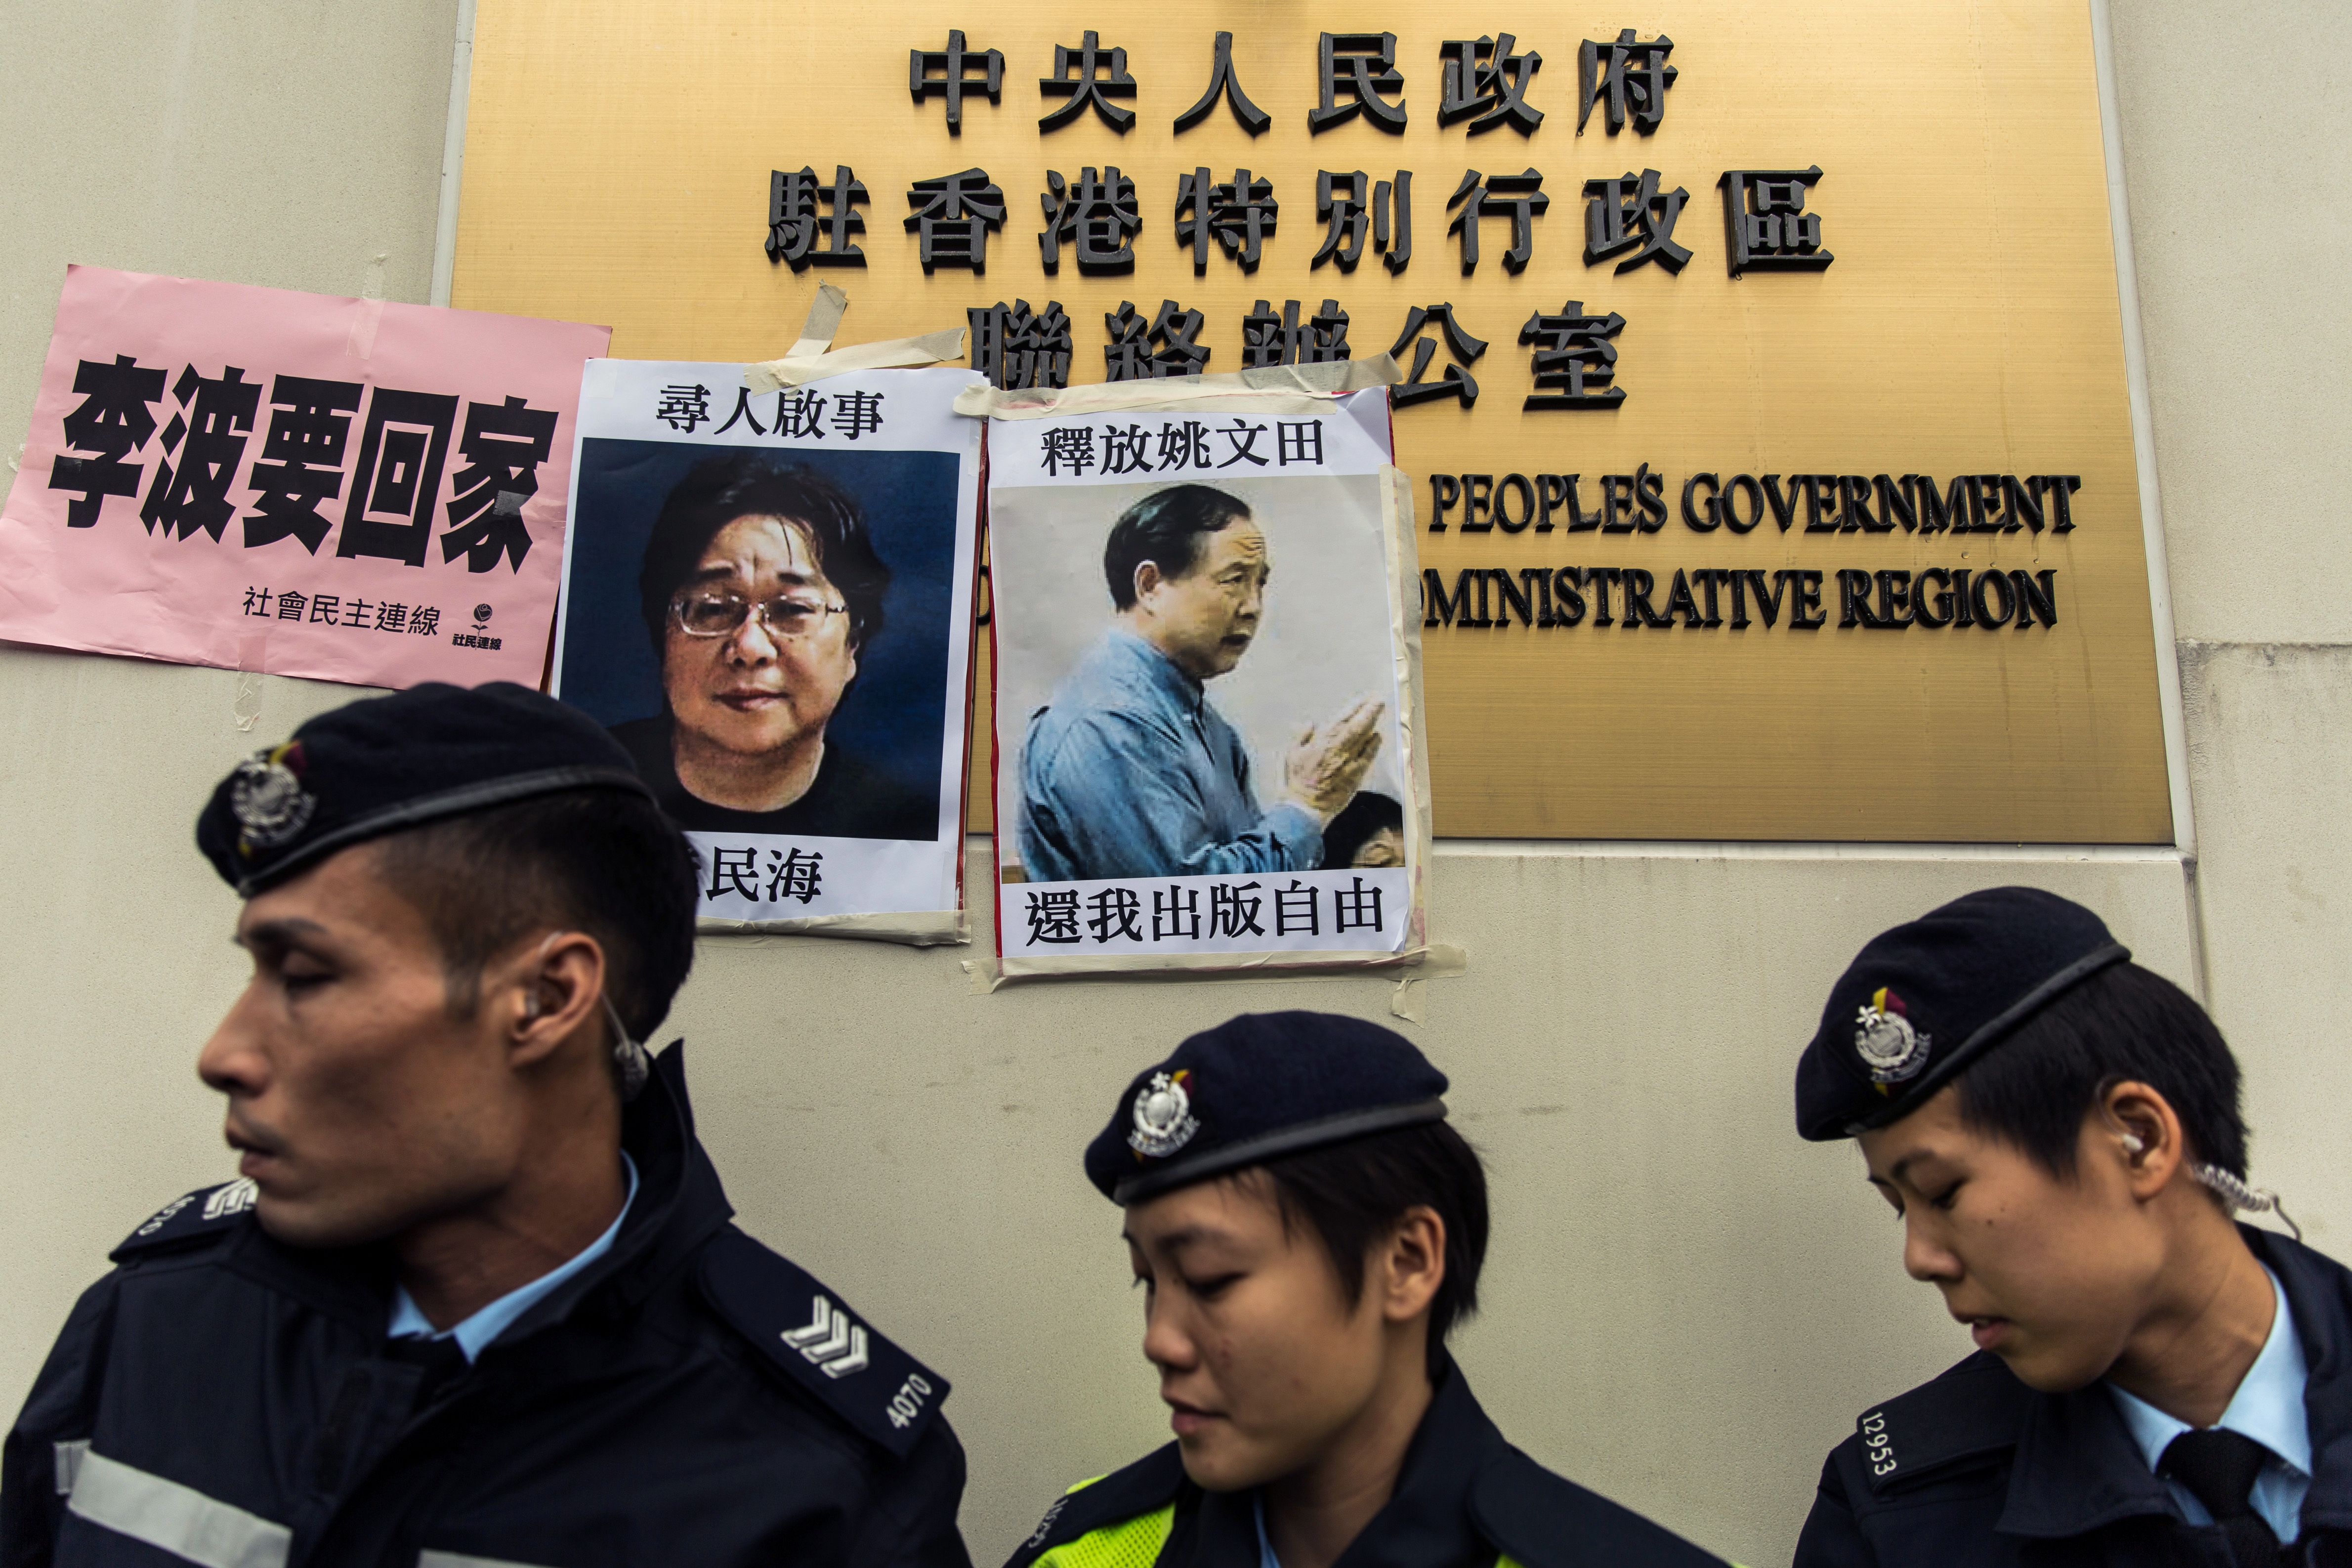 Police walk past missing person notices for Gui Minhai, seen on the left, one of five missing booksellers from the Mighty Current publishing house and Yau Wentian, a Hong Kong publisher who was last year jailed for 10 years while preparing to release a book critical of Chinese President Xi Jinping, in this photo taken on Jan. 3, 2016. The rendition, disappearance and detention of Hong Kong publishers, for printing works that were not illegal in Hong Kong, sent shockwaves of fear through the territory.